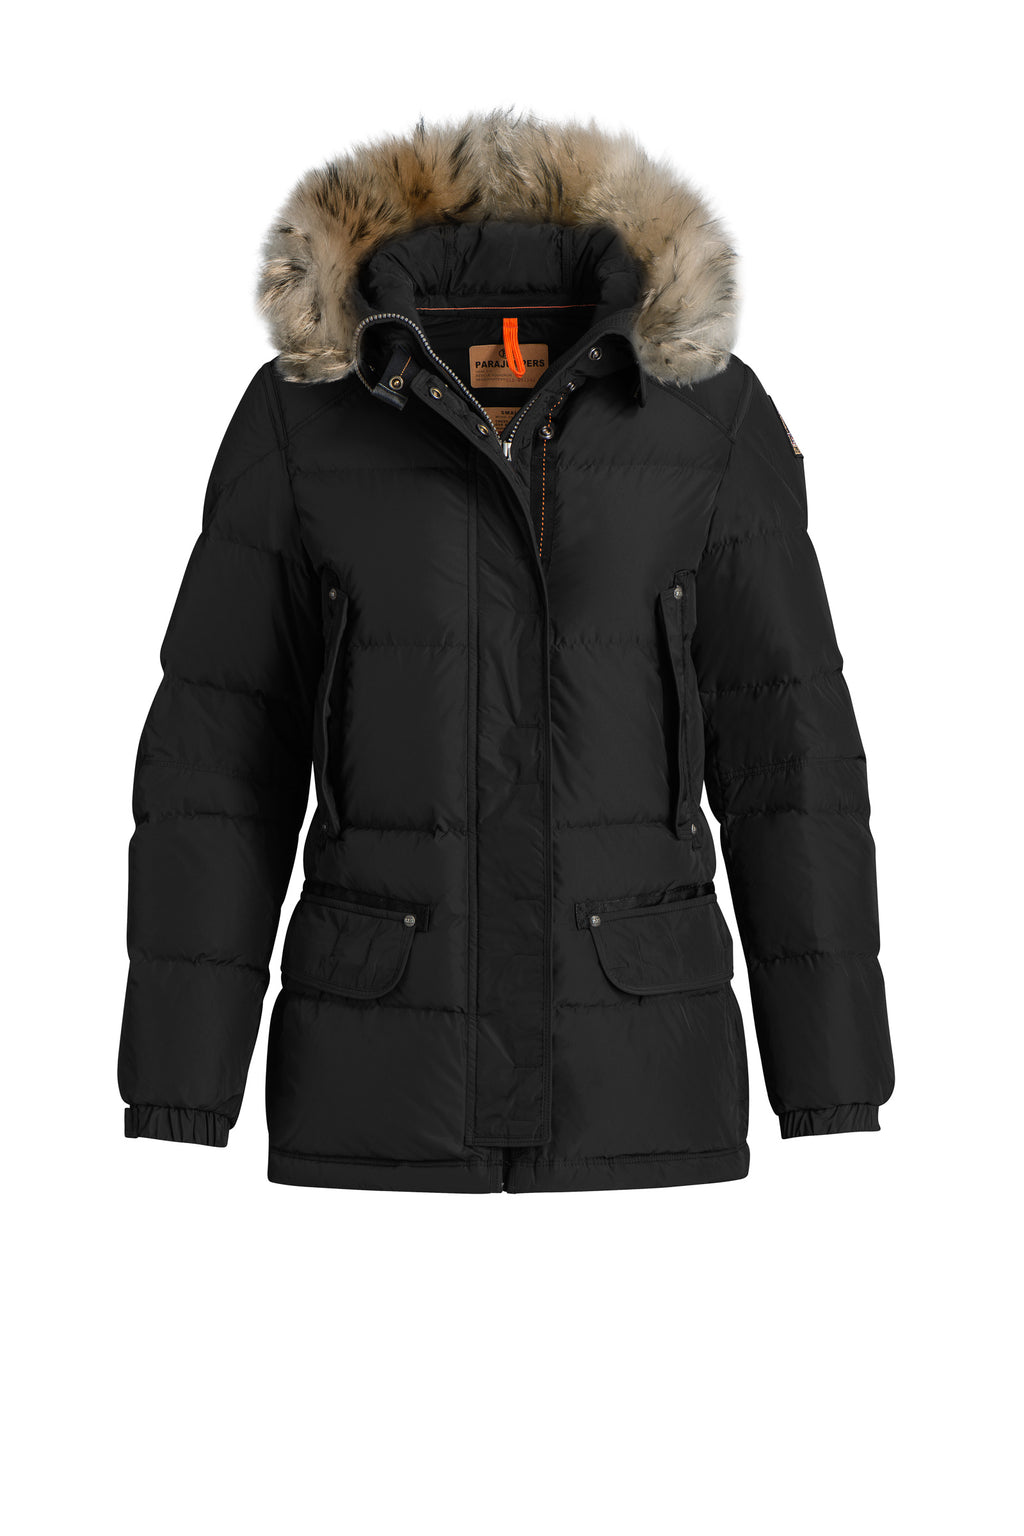 Parajumpers Heather Parka in Black